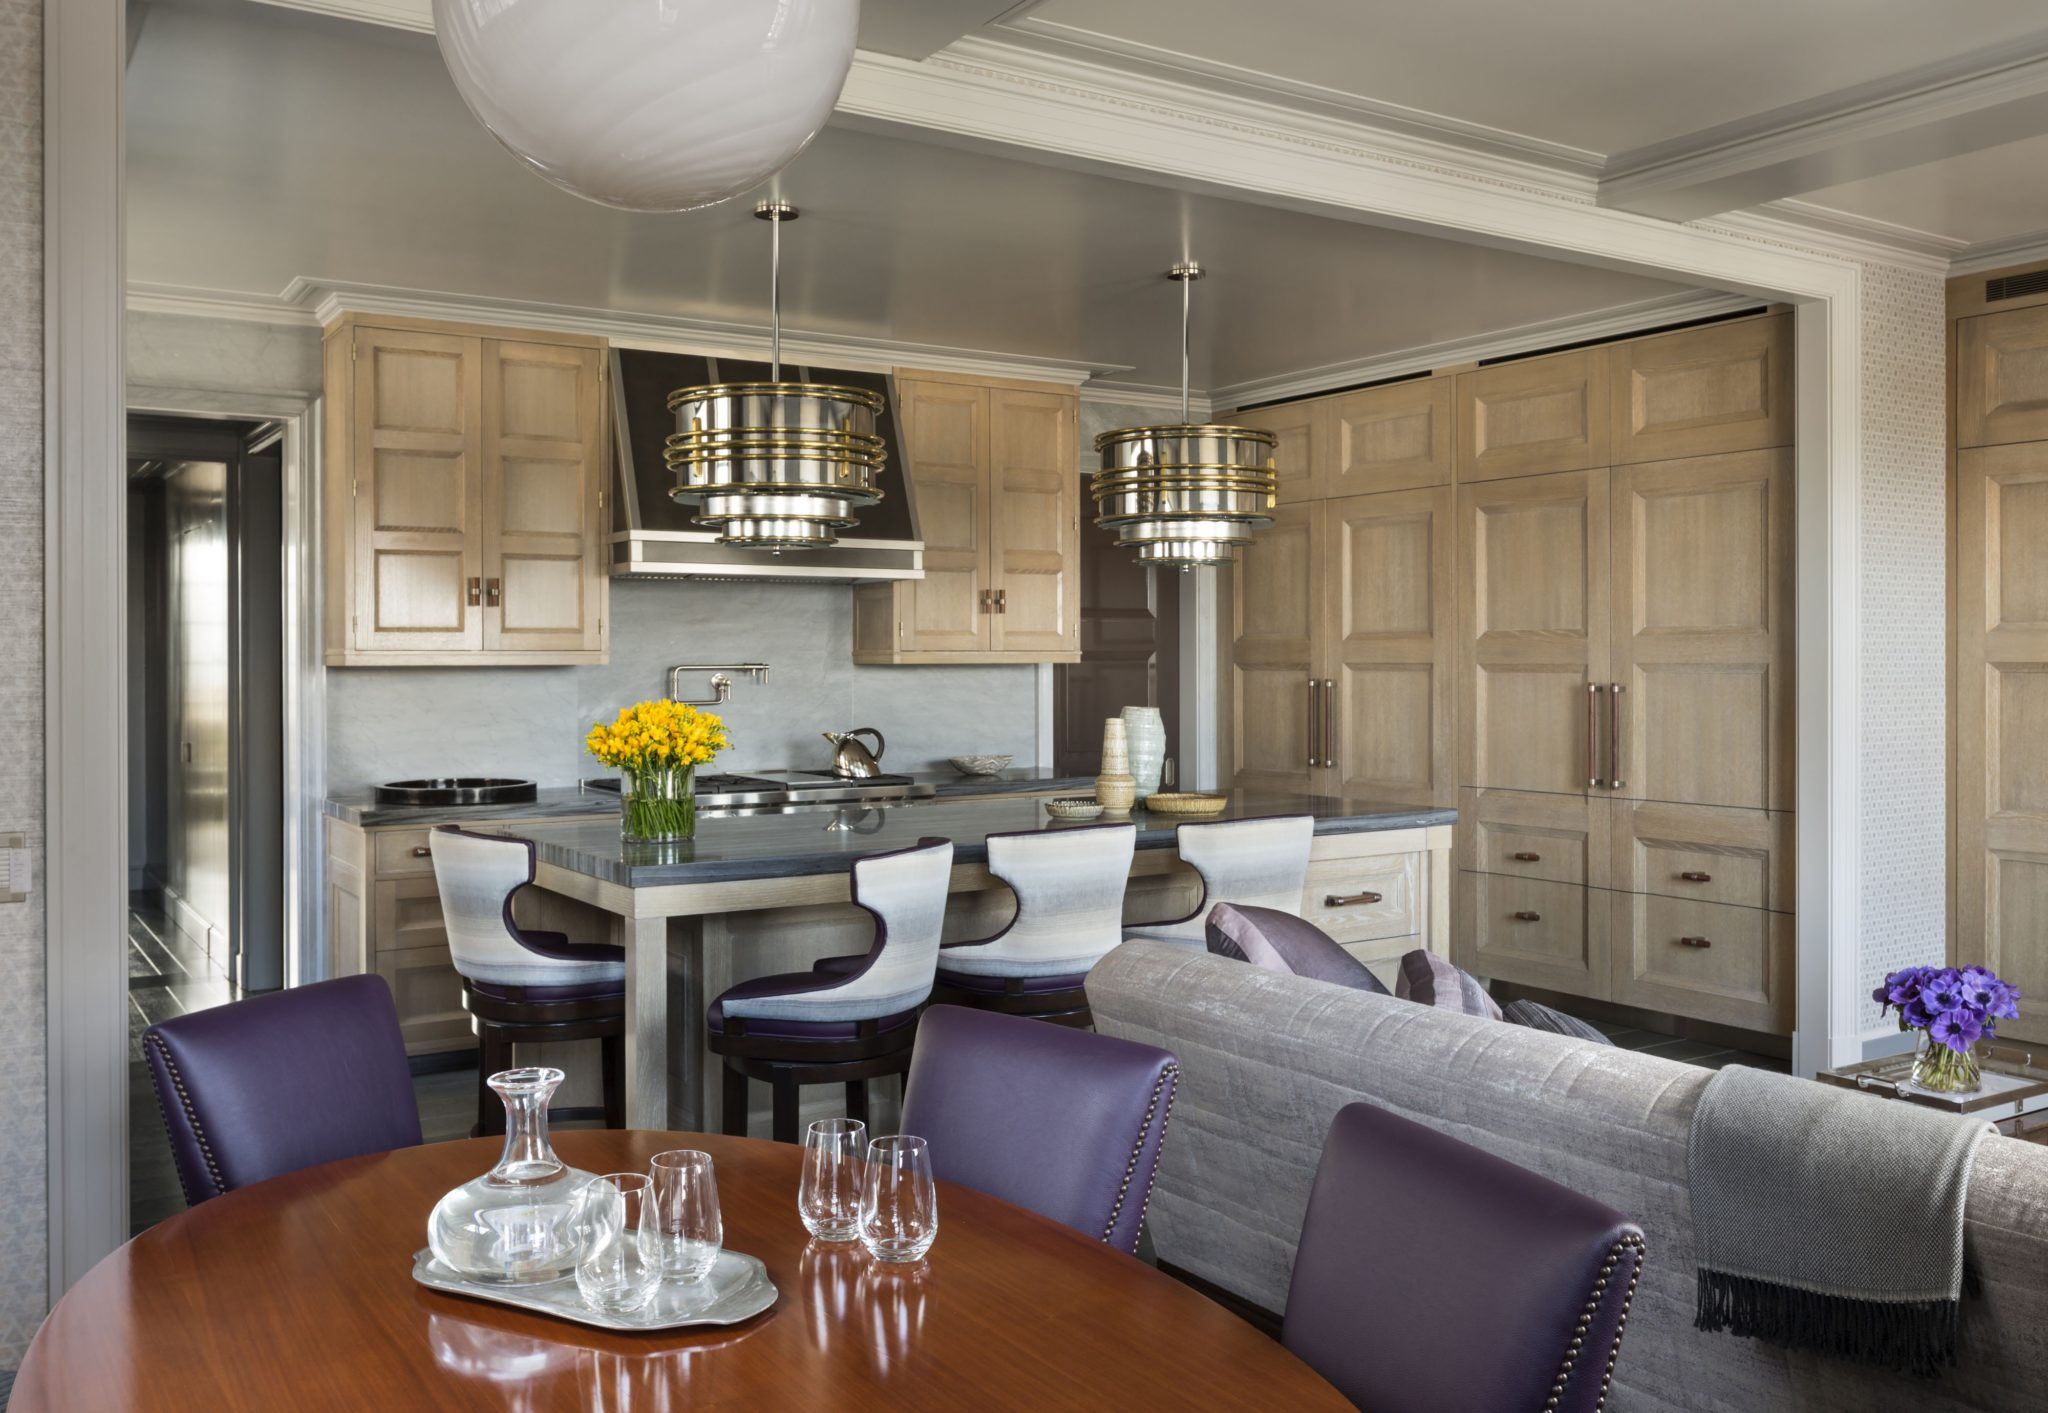 A large kitchen and family room replaces several smaller maid's rooms and pantries.